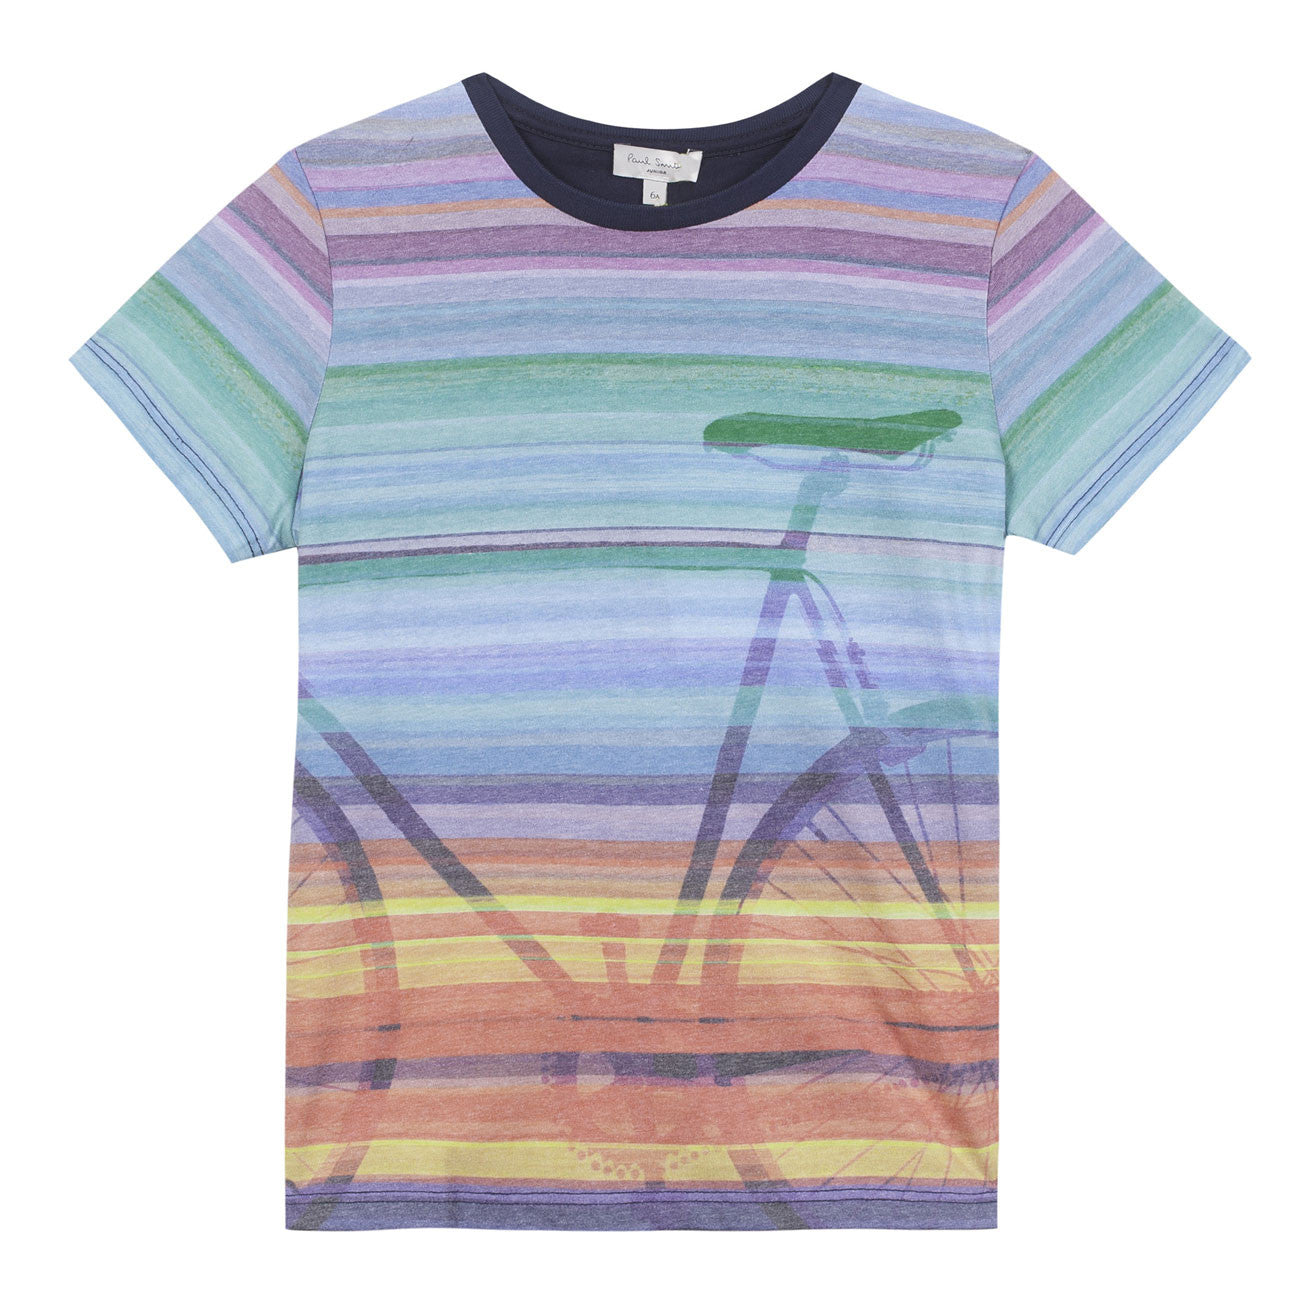 Paul Smith Striped Bike Tee - Ladida